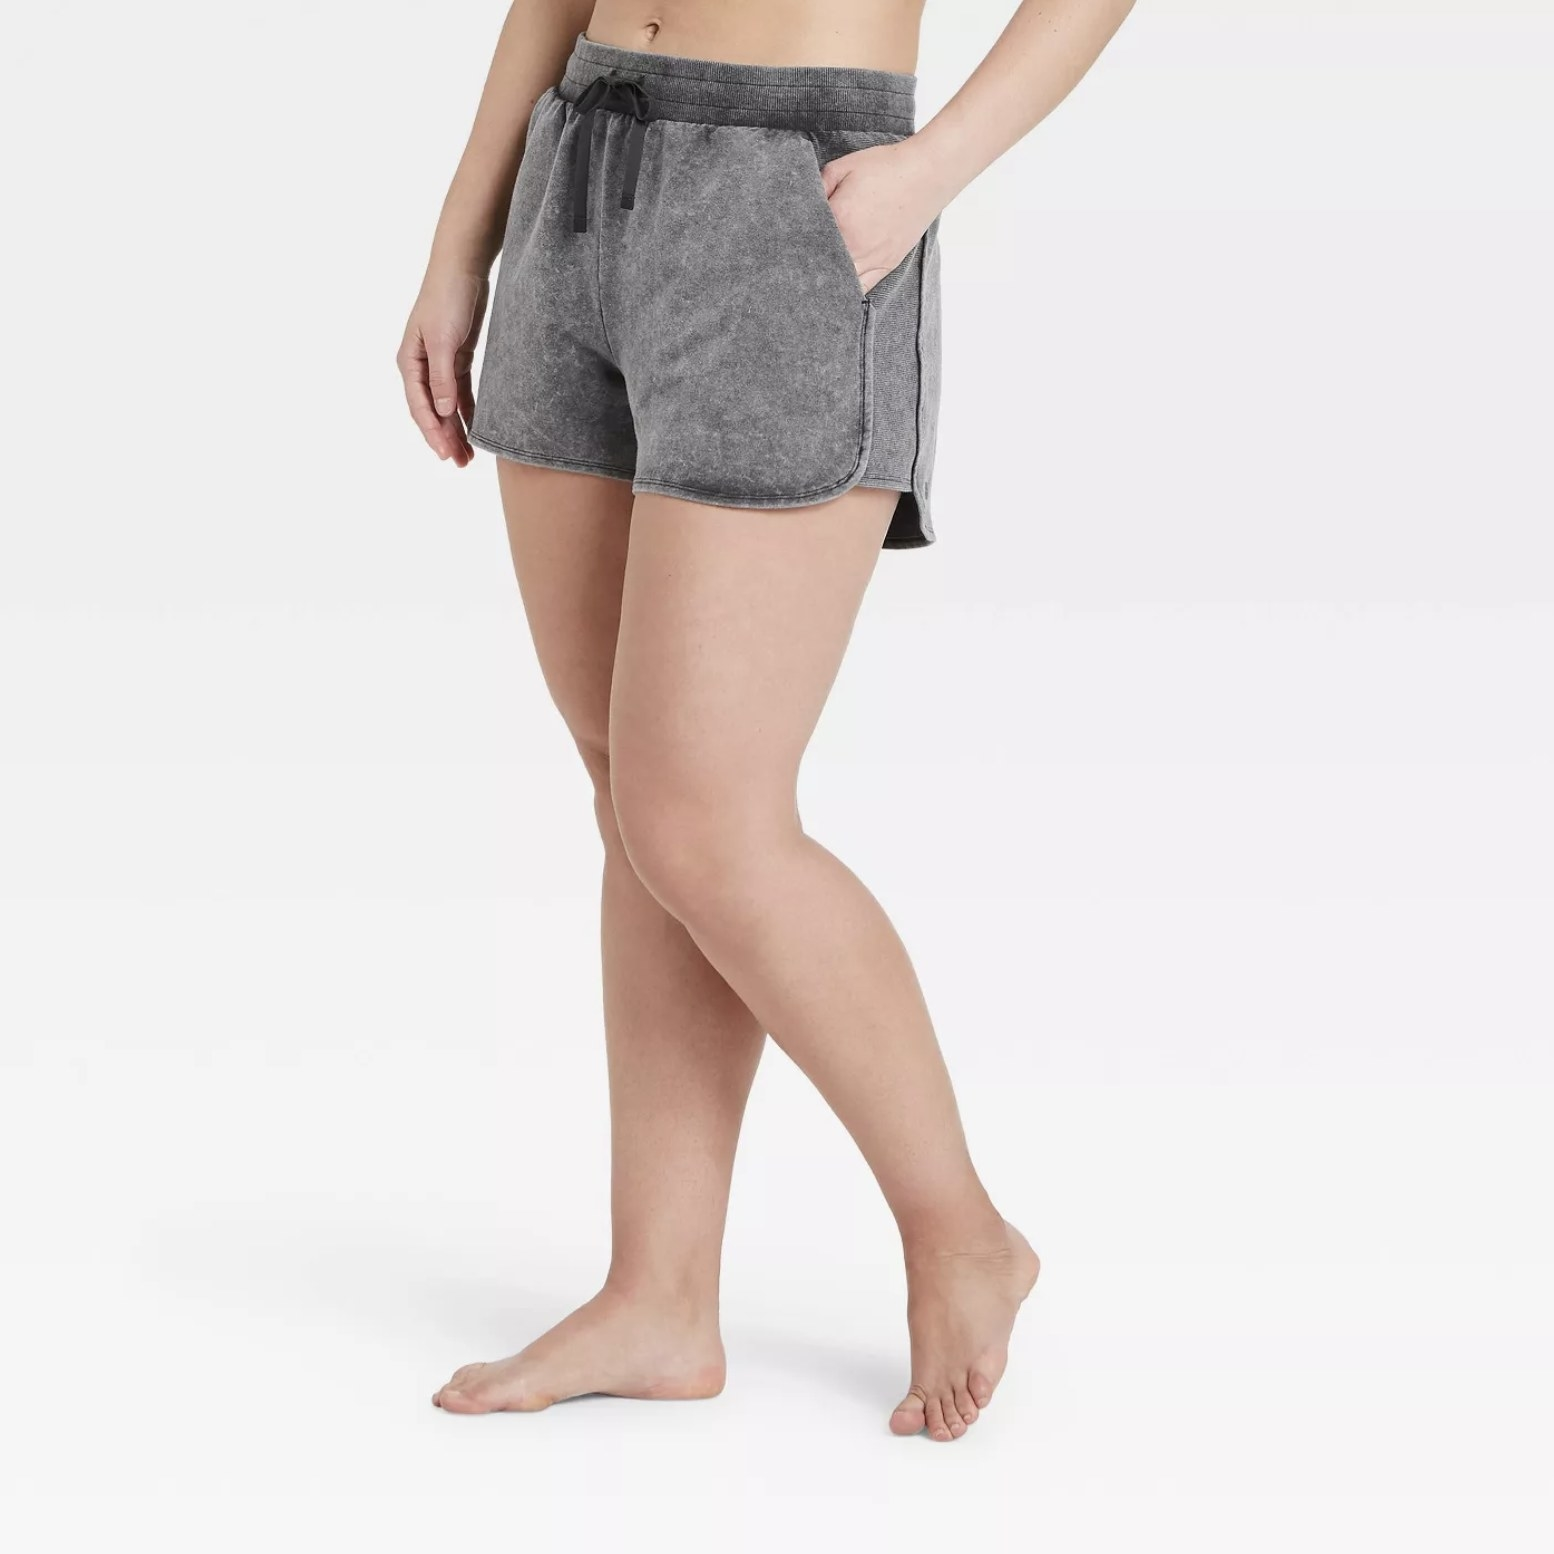 Model is wearing grey shorts with a drawstring waist band